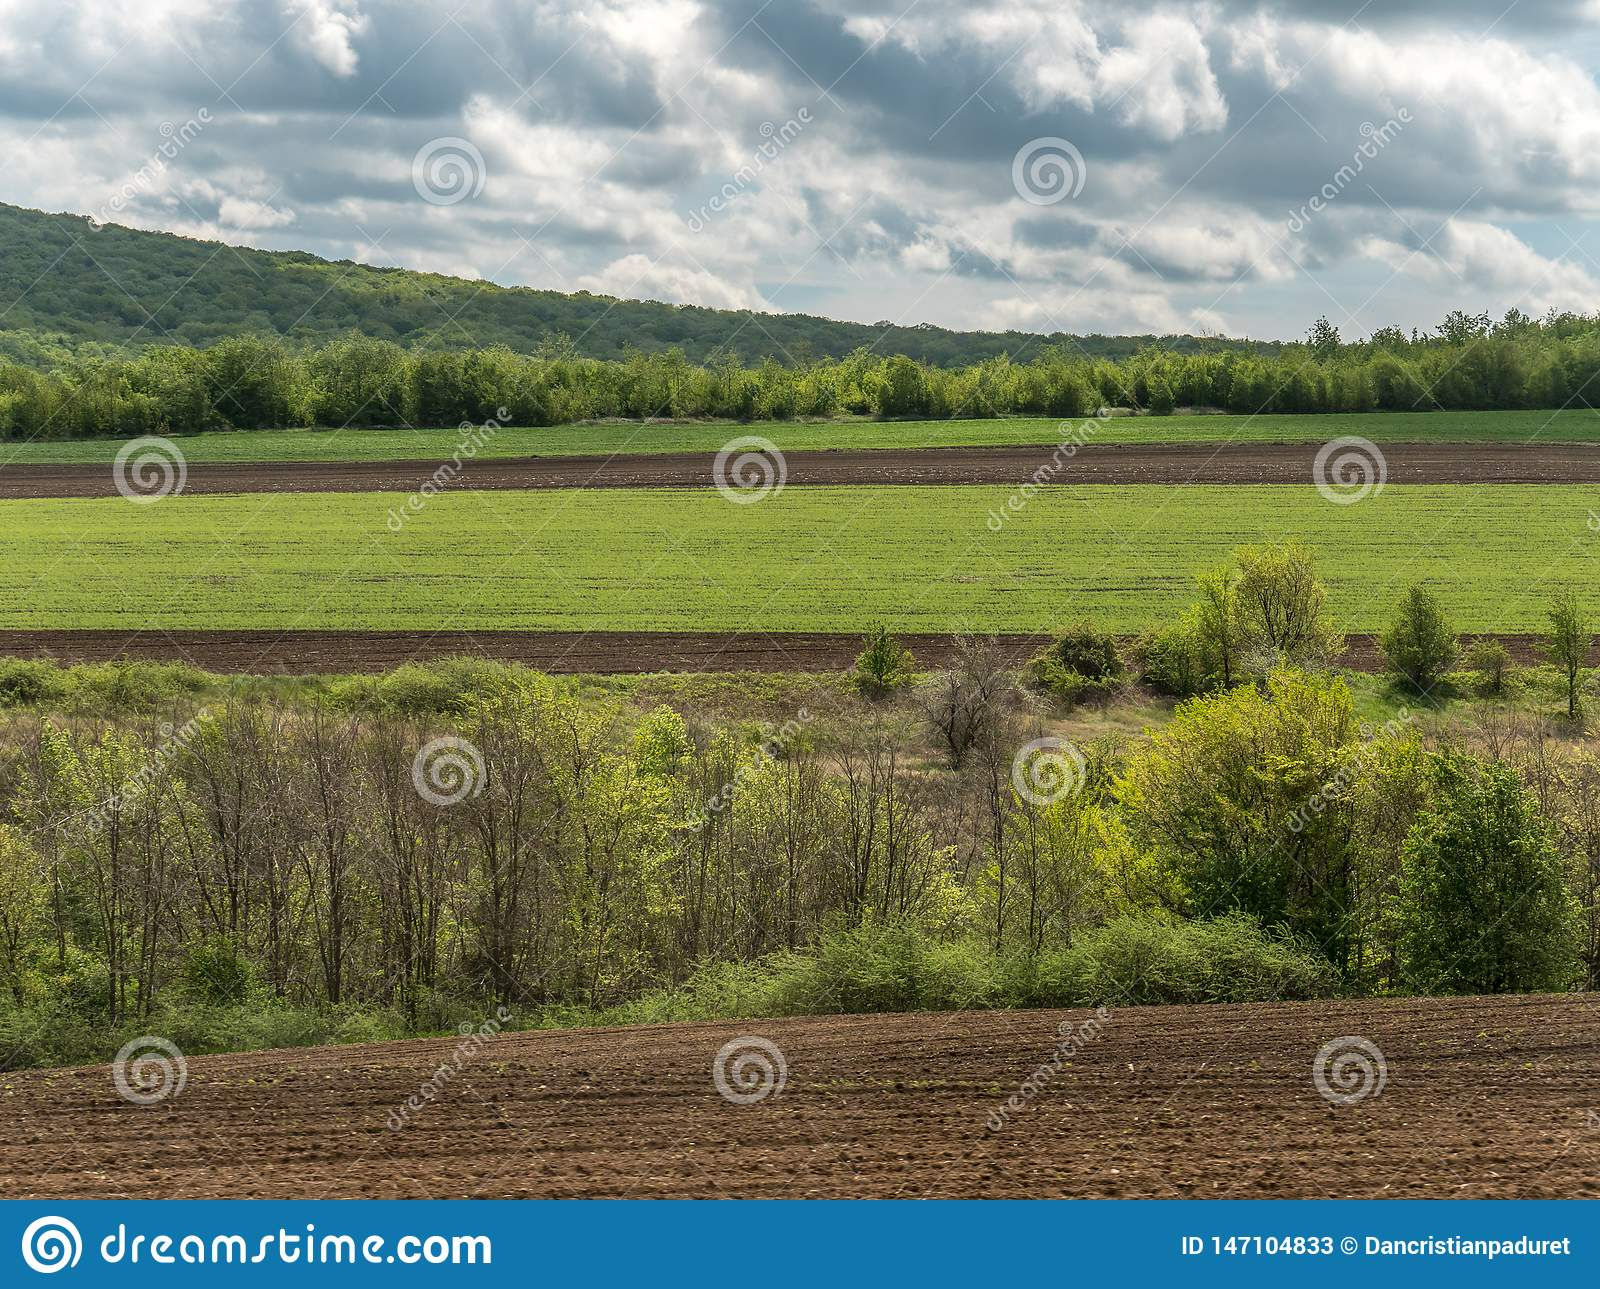 Landscape with Agriculture Fields and Green Areas on a Sunny Day with Cloudy Sky